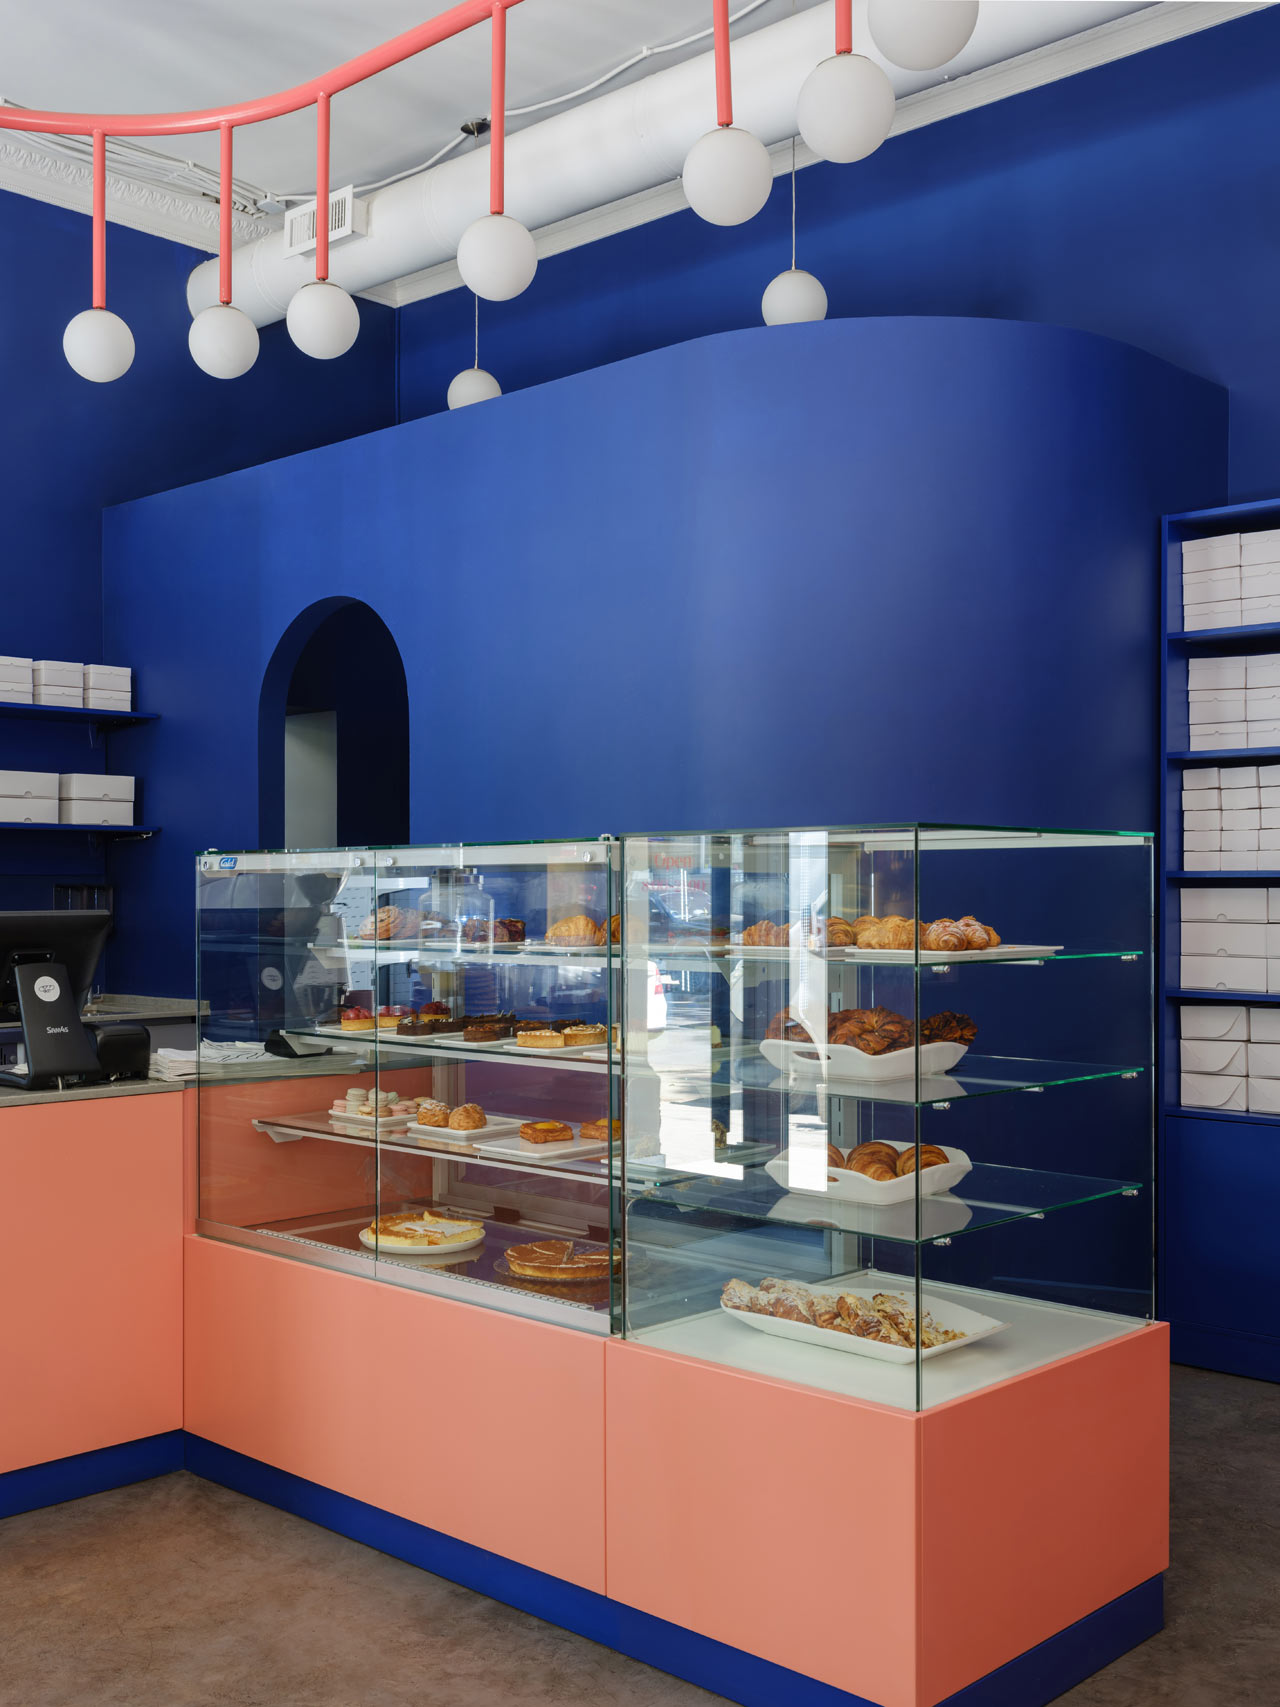 The bakery's sales area has more contrast and each color intensified since they are color wheel opposites.  Breadway café - Odessa, Ukraine